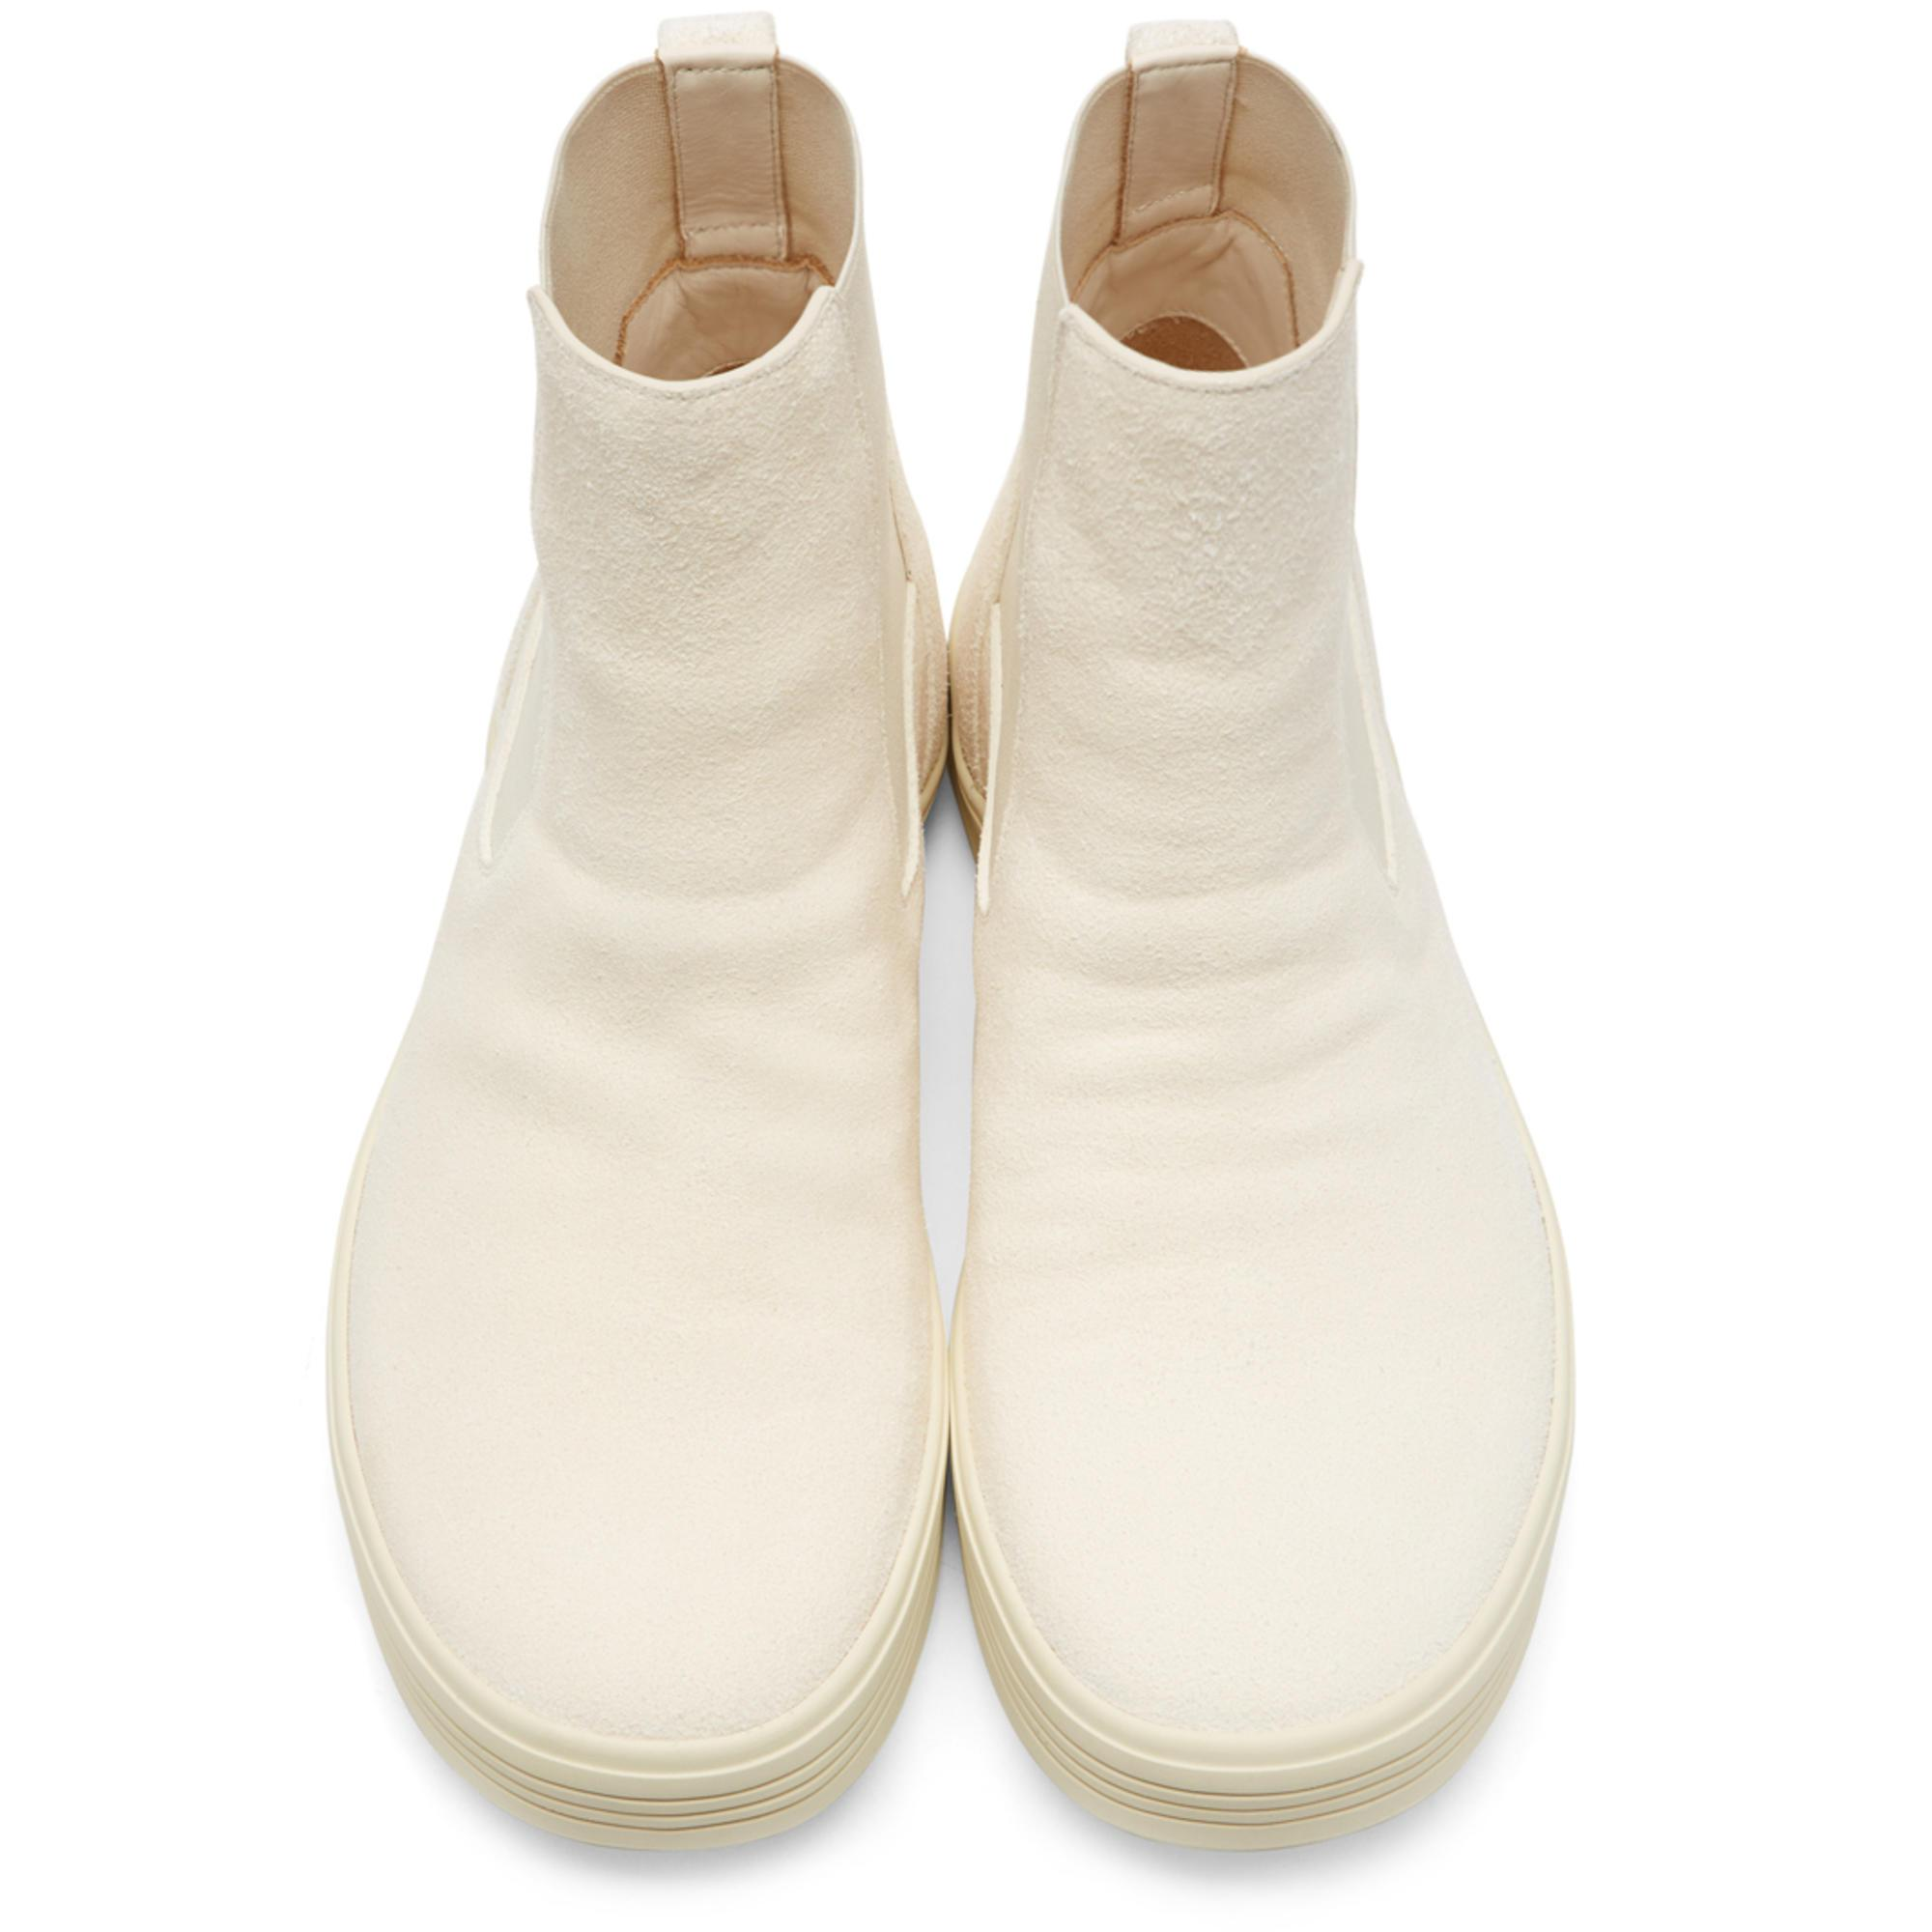 0ee9a3c0317 Rick Owens Off-white Suede Mastodon Elastic Boots